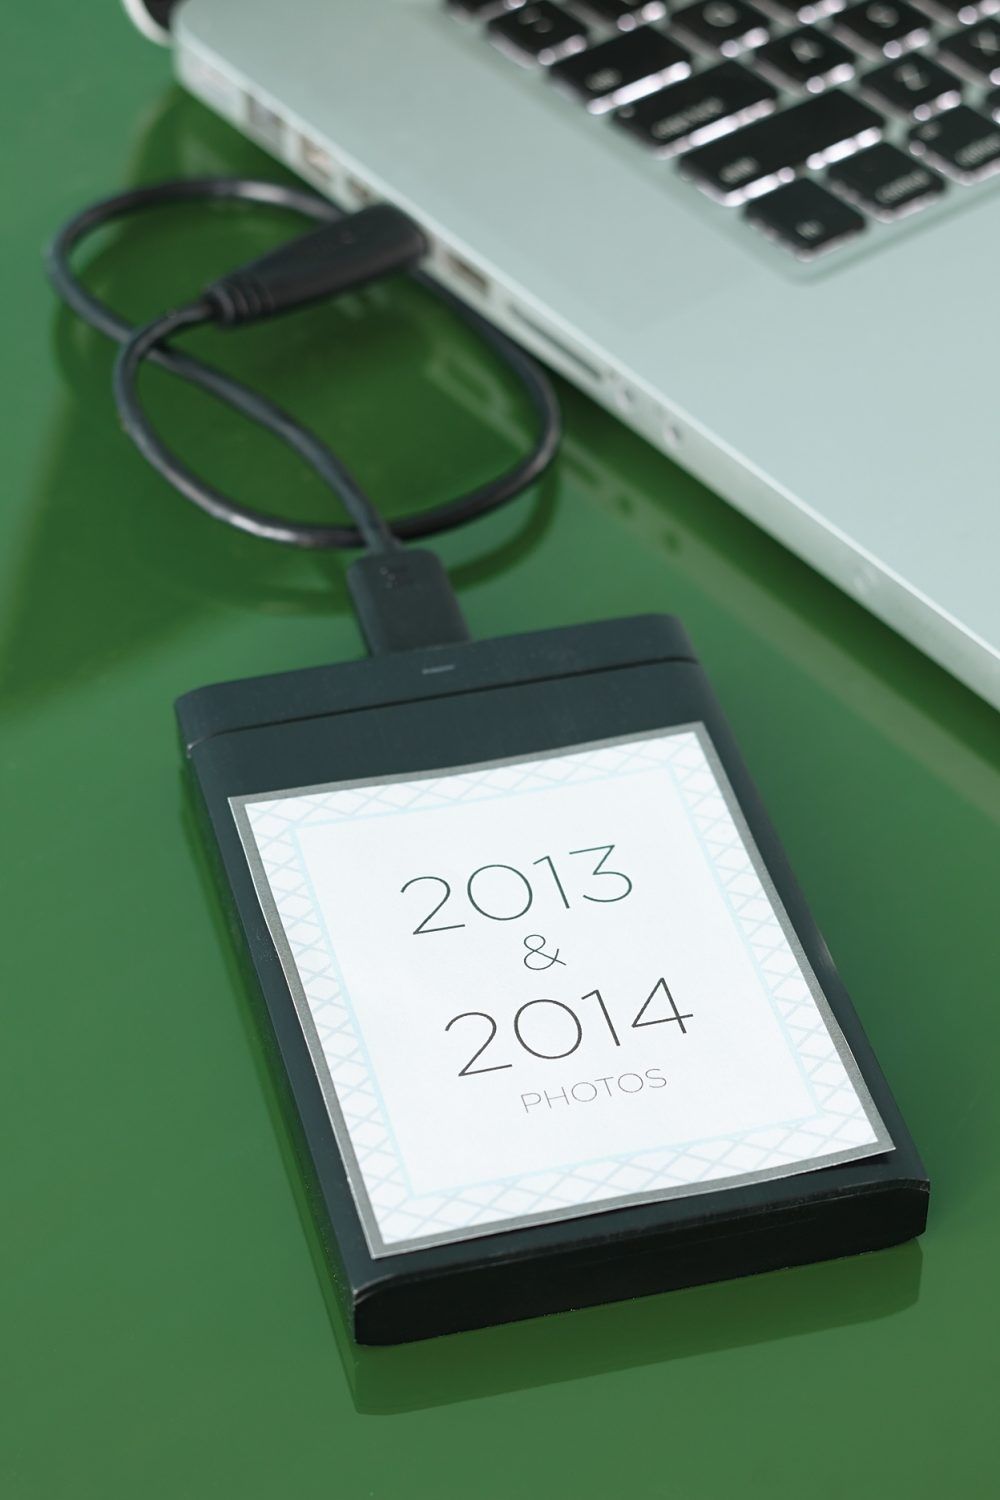 Clearly label storage devices, such as this hard drive, so you can find your photos quickly.